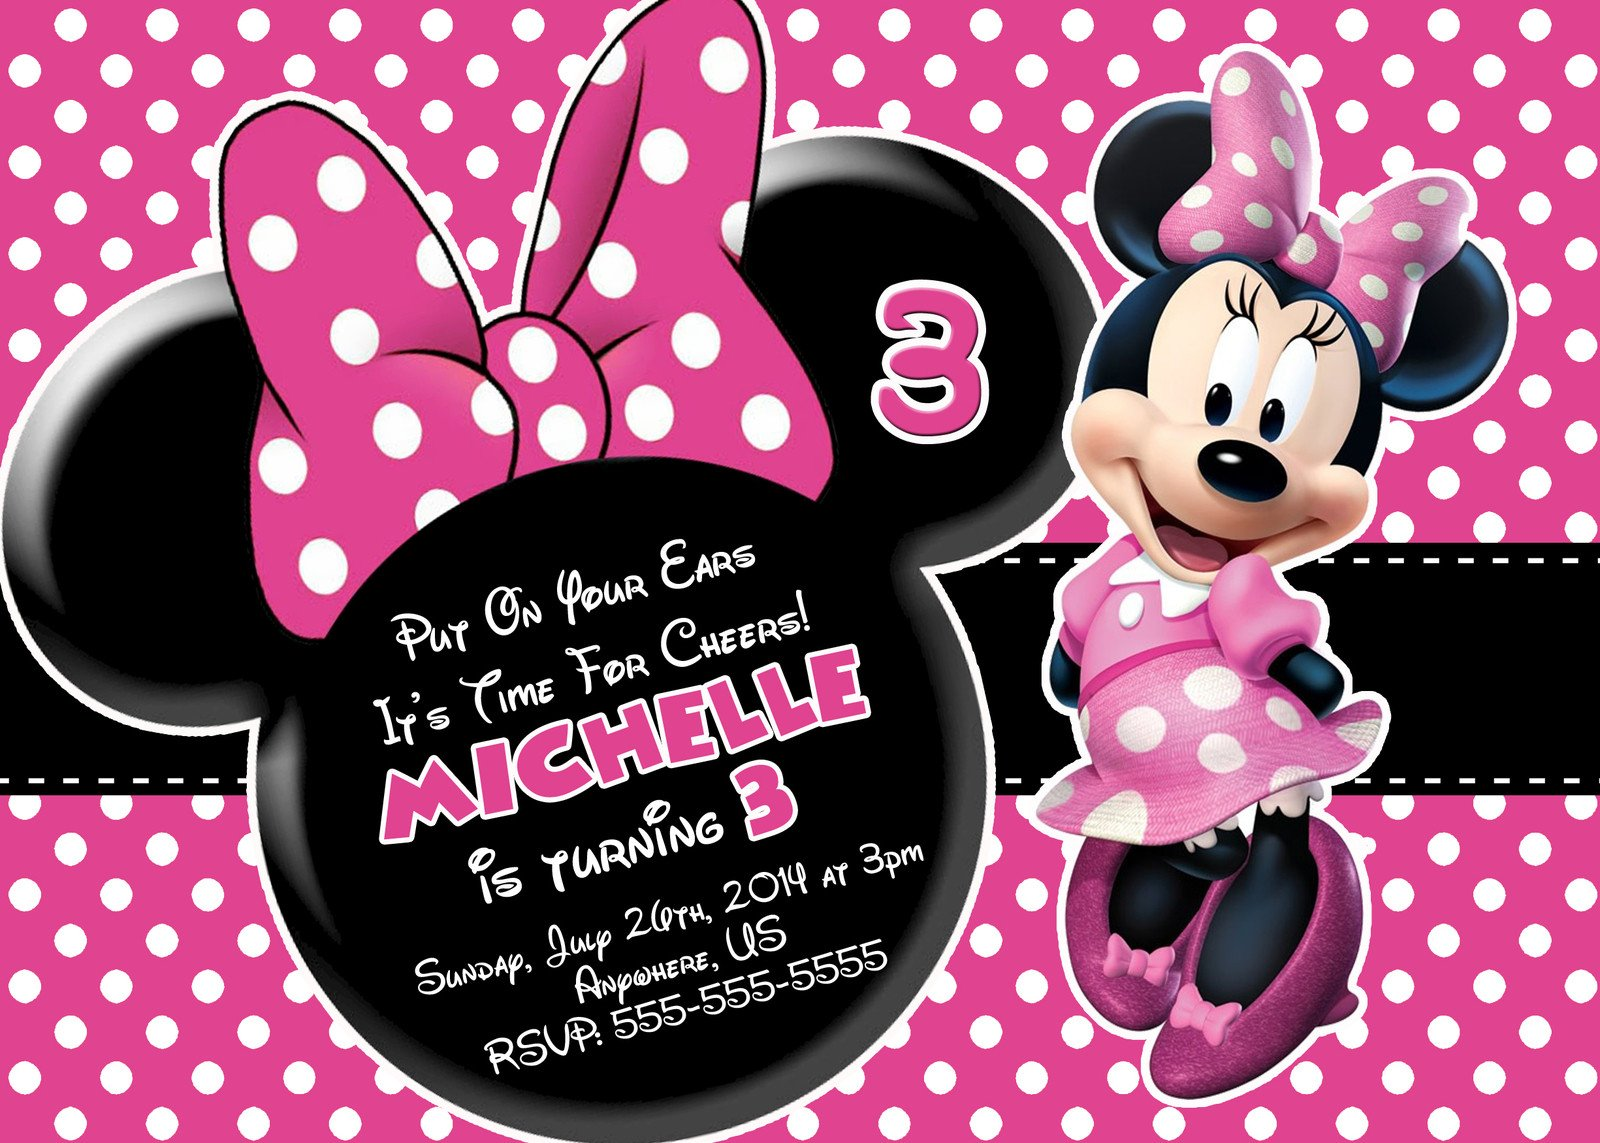 Minnie Mouse Party Invitations Free Minnie Mouse Printable Birthday Invitations